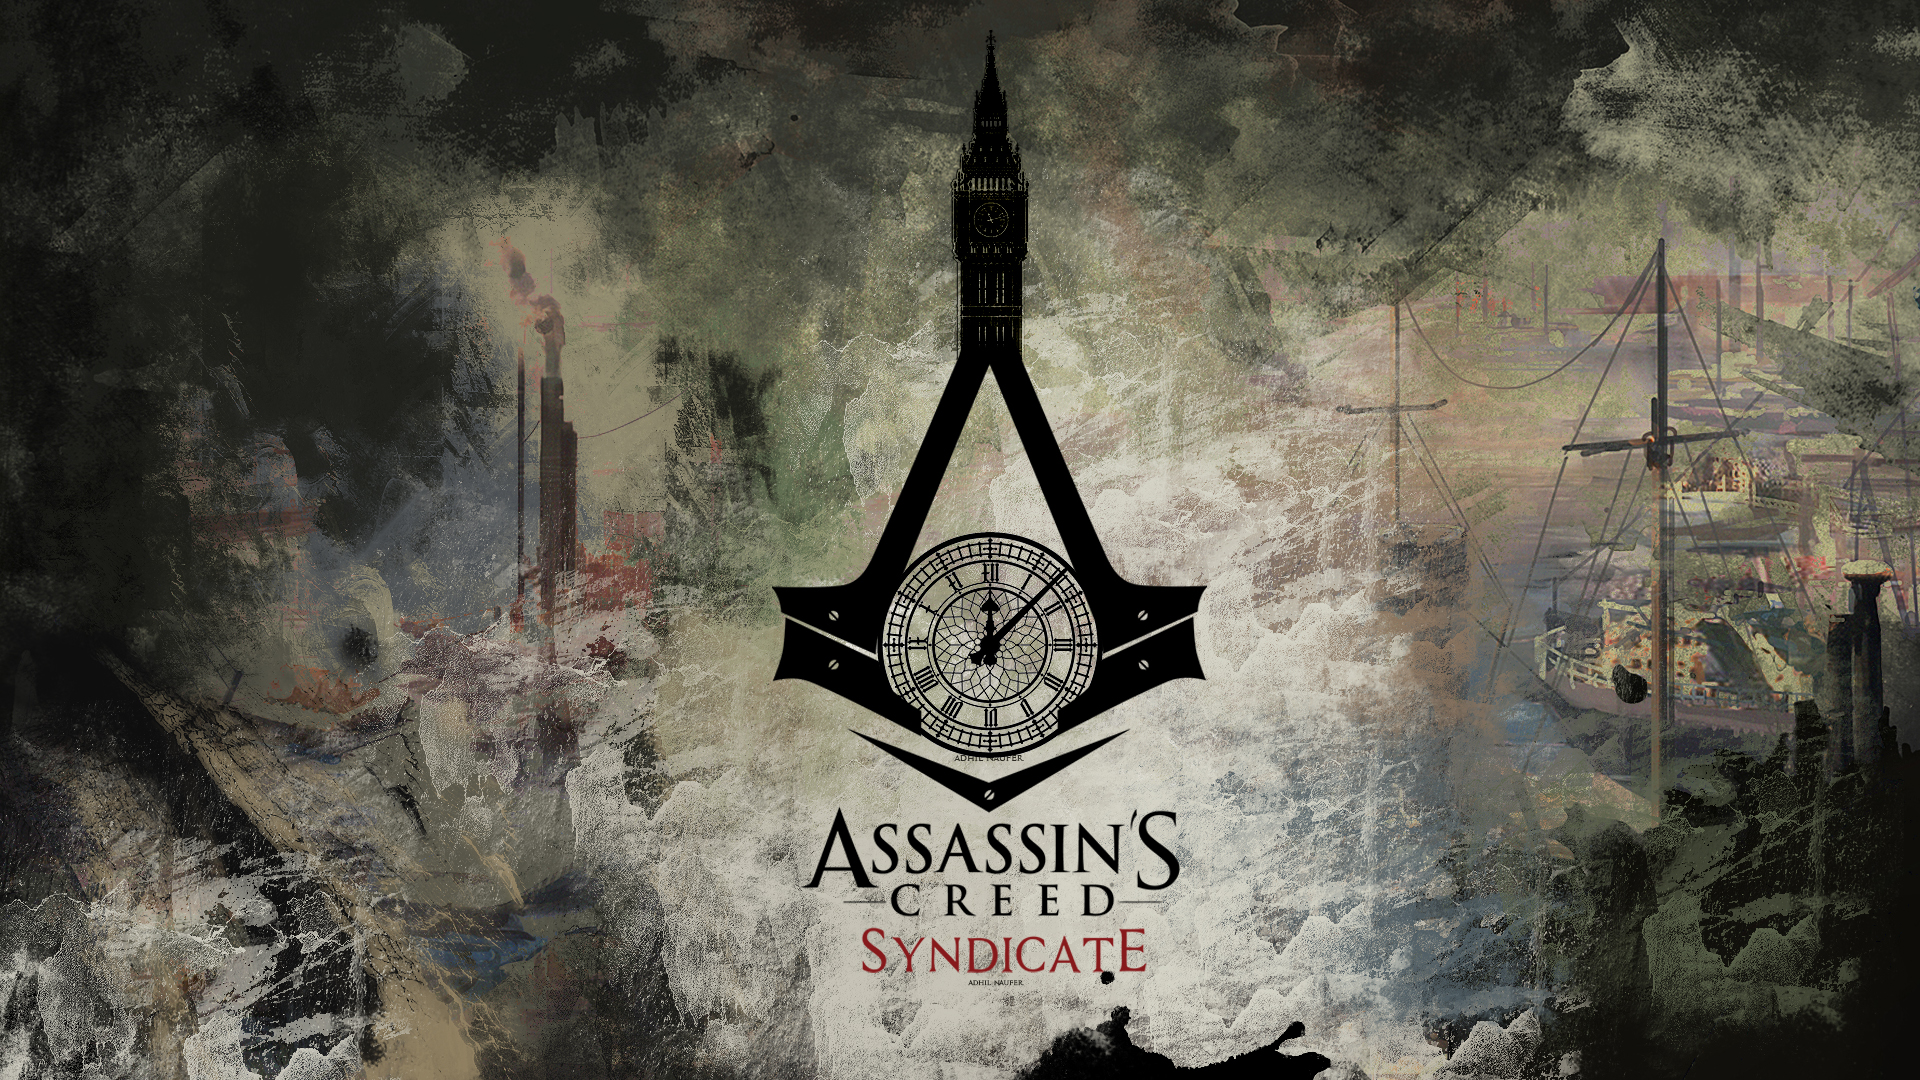 assassin's creed syndicate wallpaper full hd wallpaper and